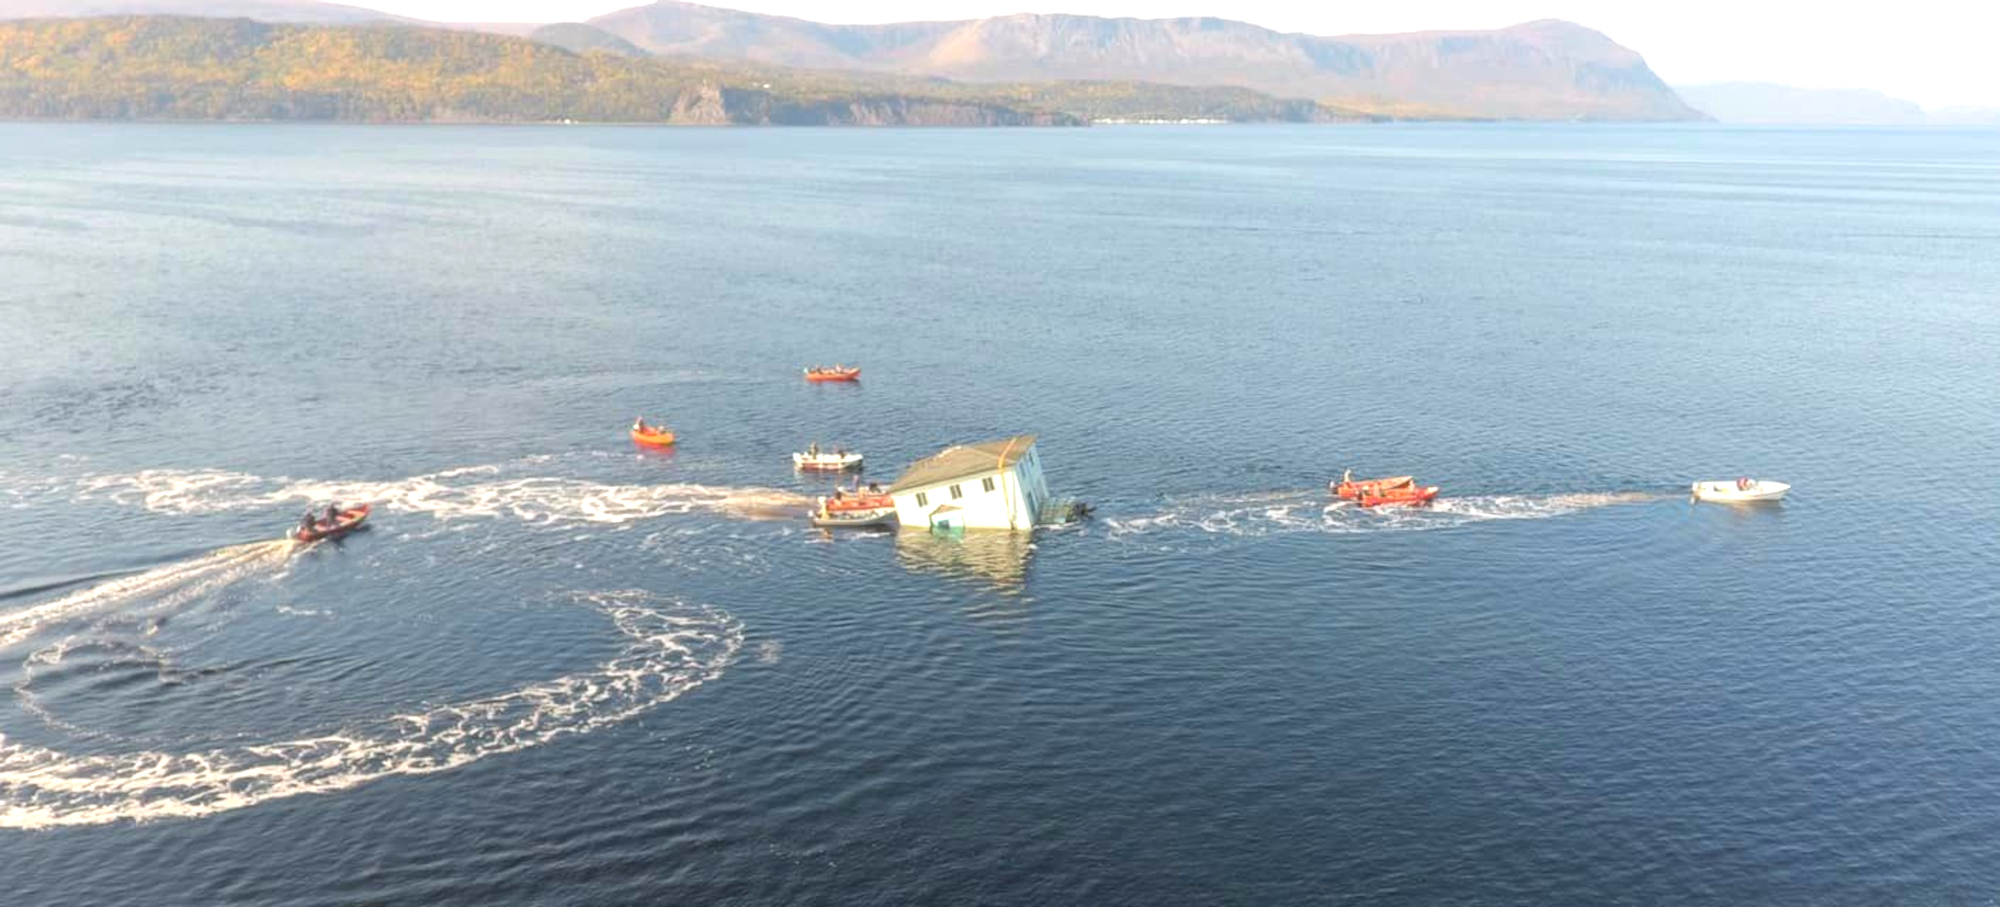 VIDEO: Home Takes To The Water To Reach New Plot Of Land